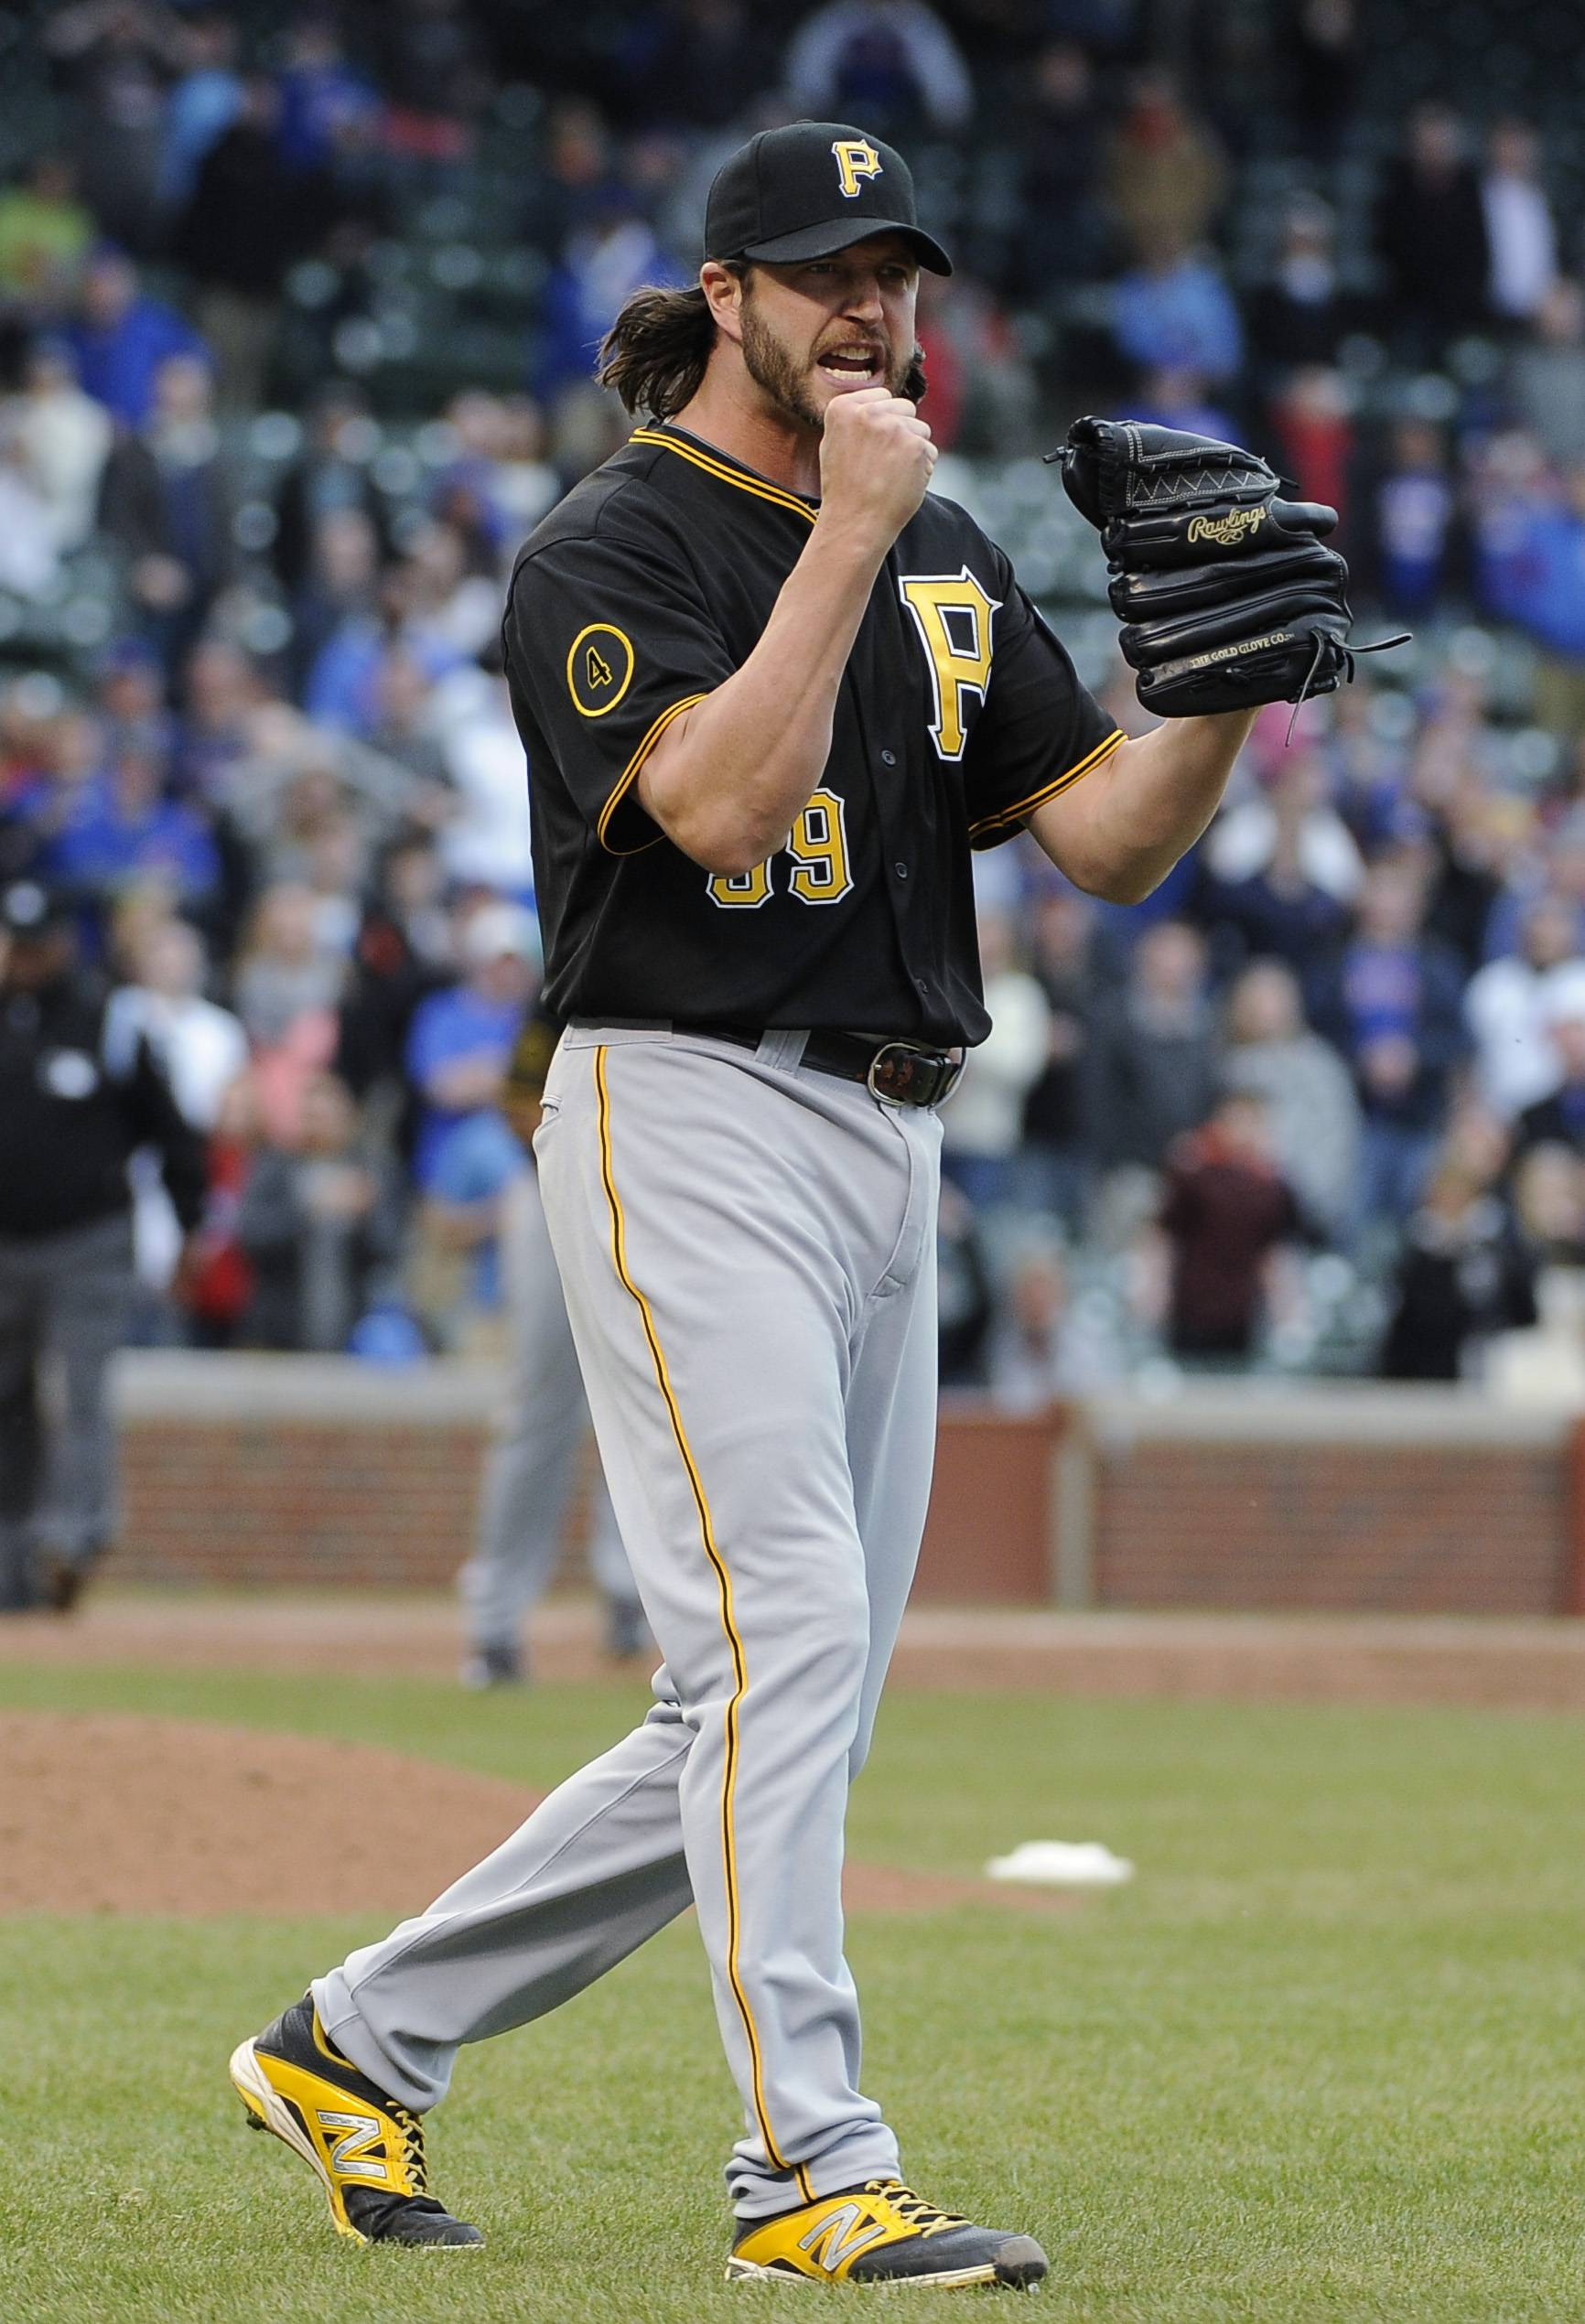 Pittsburgh Pirates relief pitcher Jason Grilli reacts after getting the last out against the Chicago Cubs in a baseball game, Thursday, April 10, 2014, in Chicago. The Pirates won 5-4.